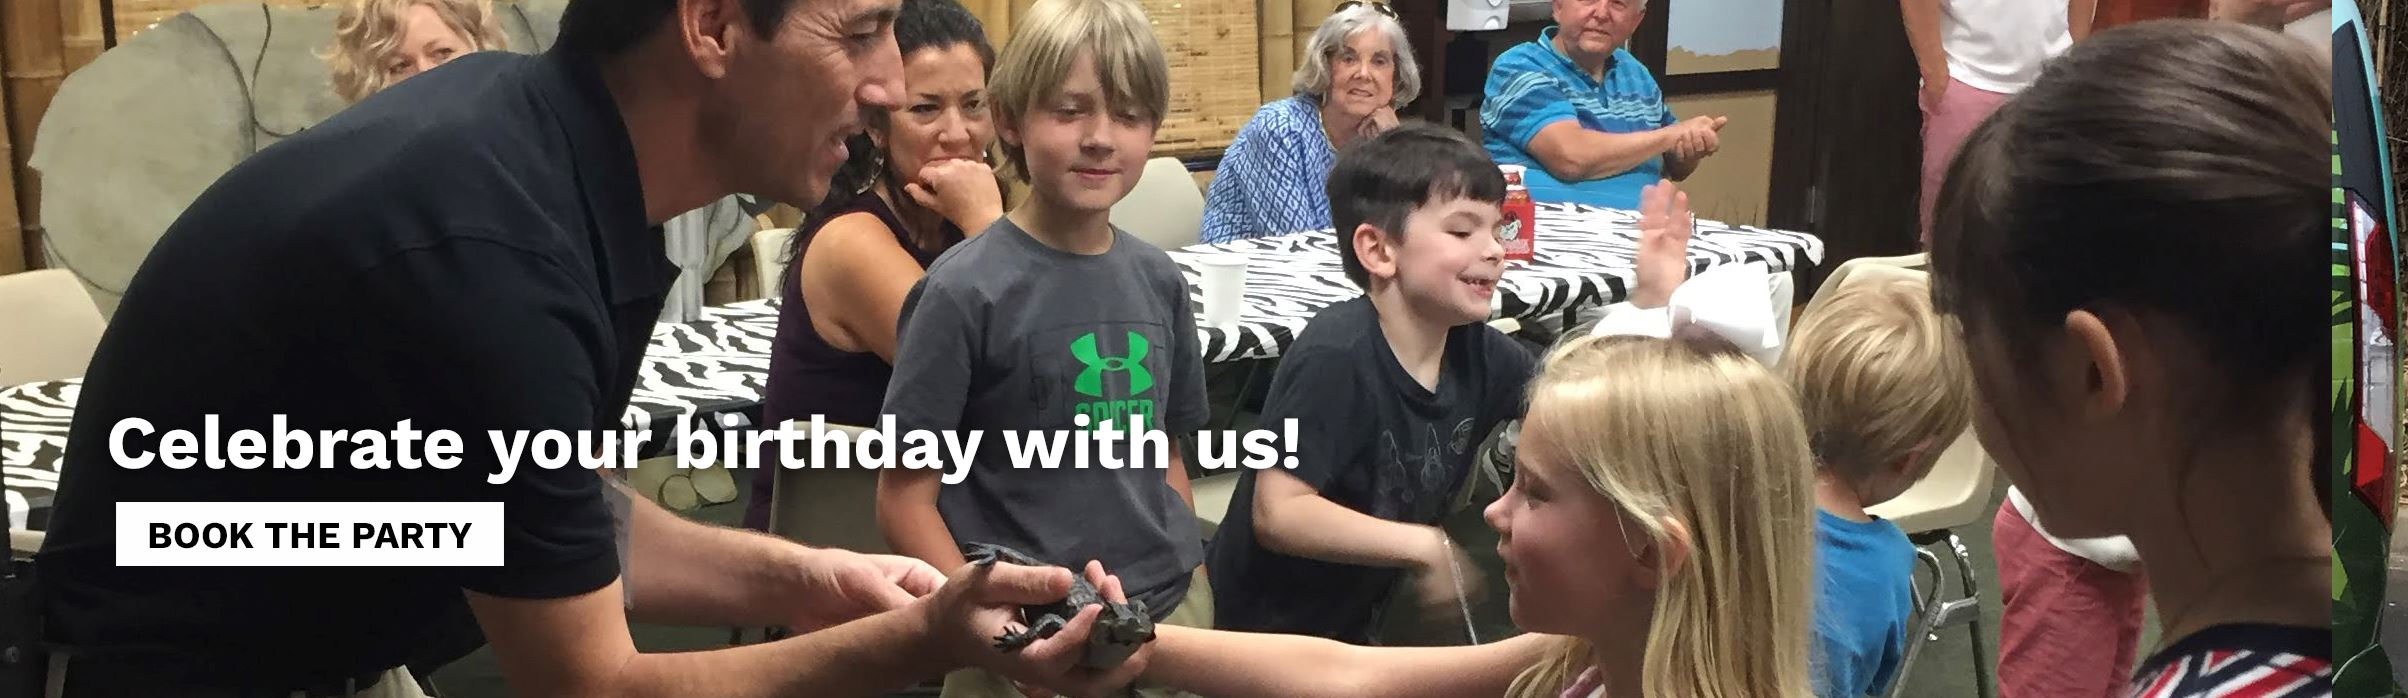 Photo Of Children At A Birthday Party Book